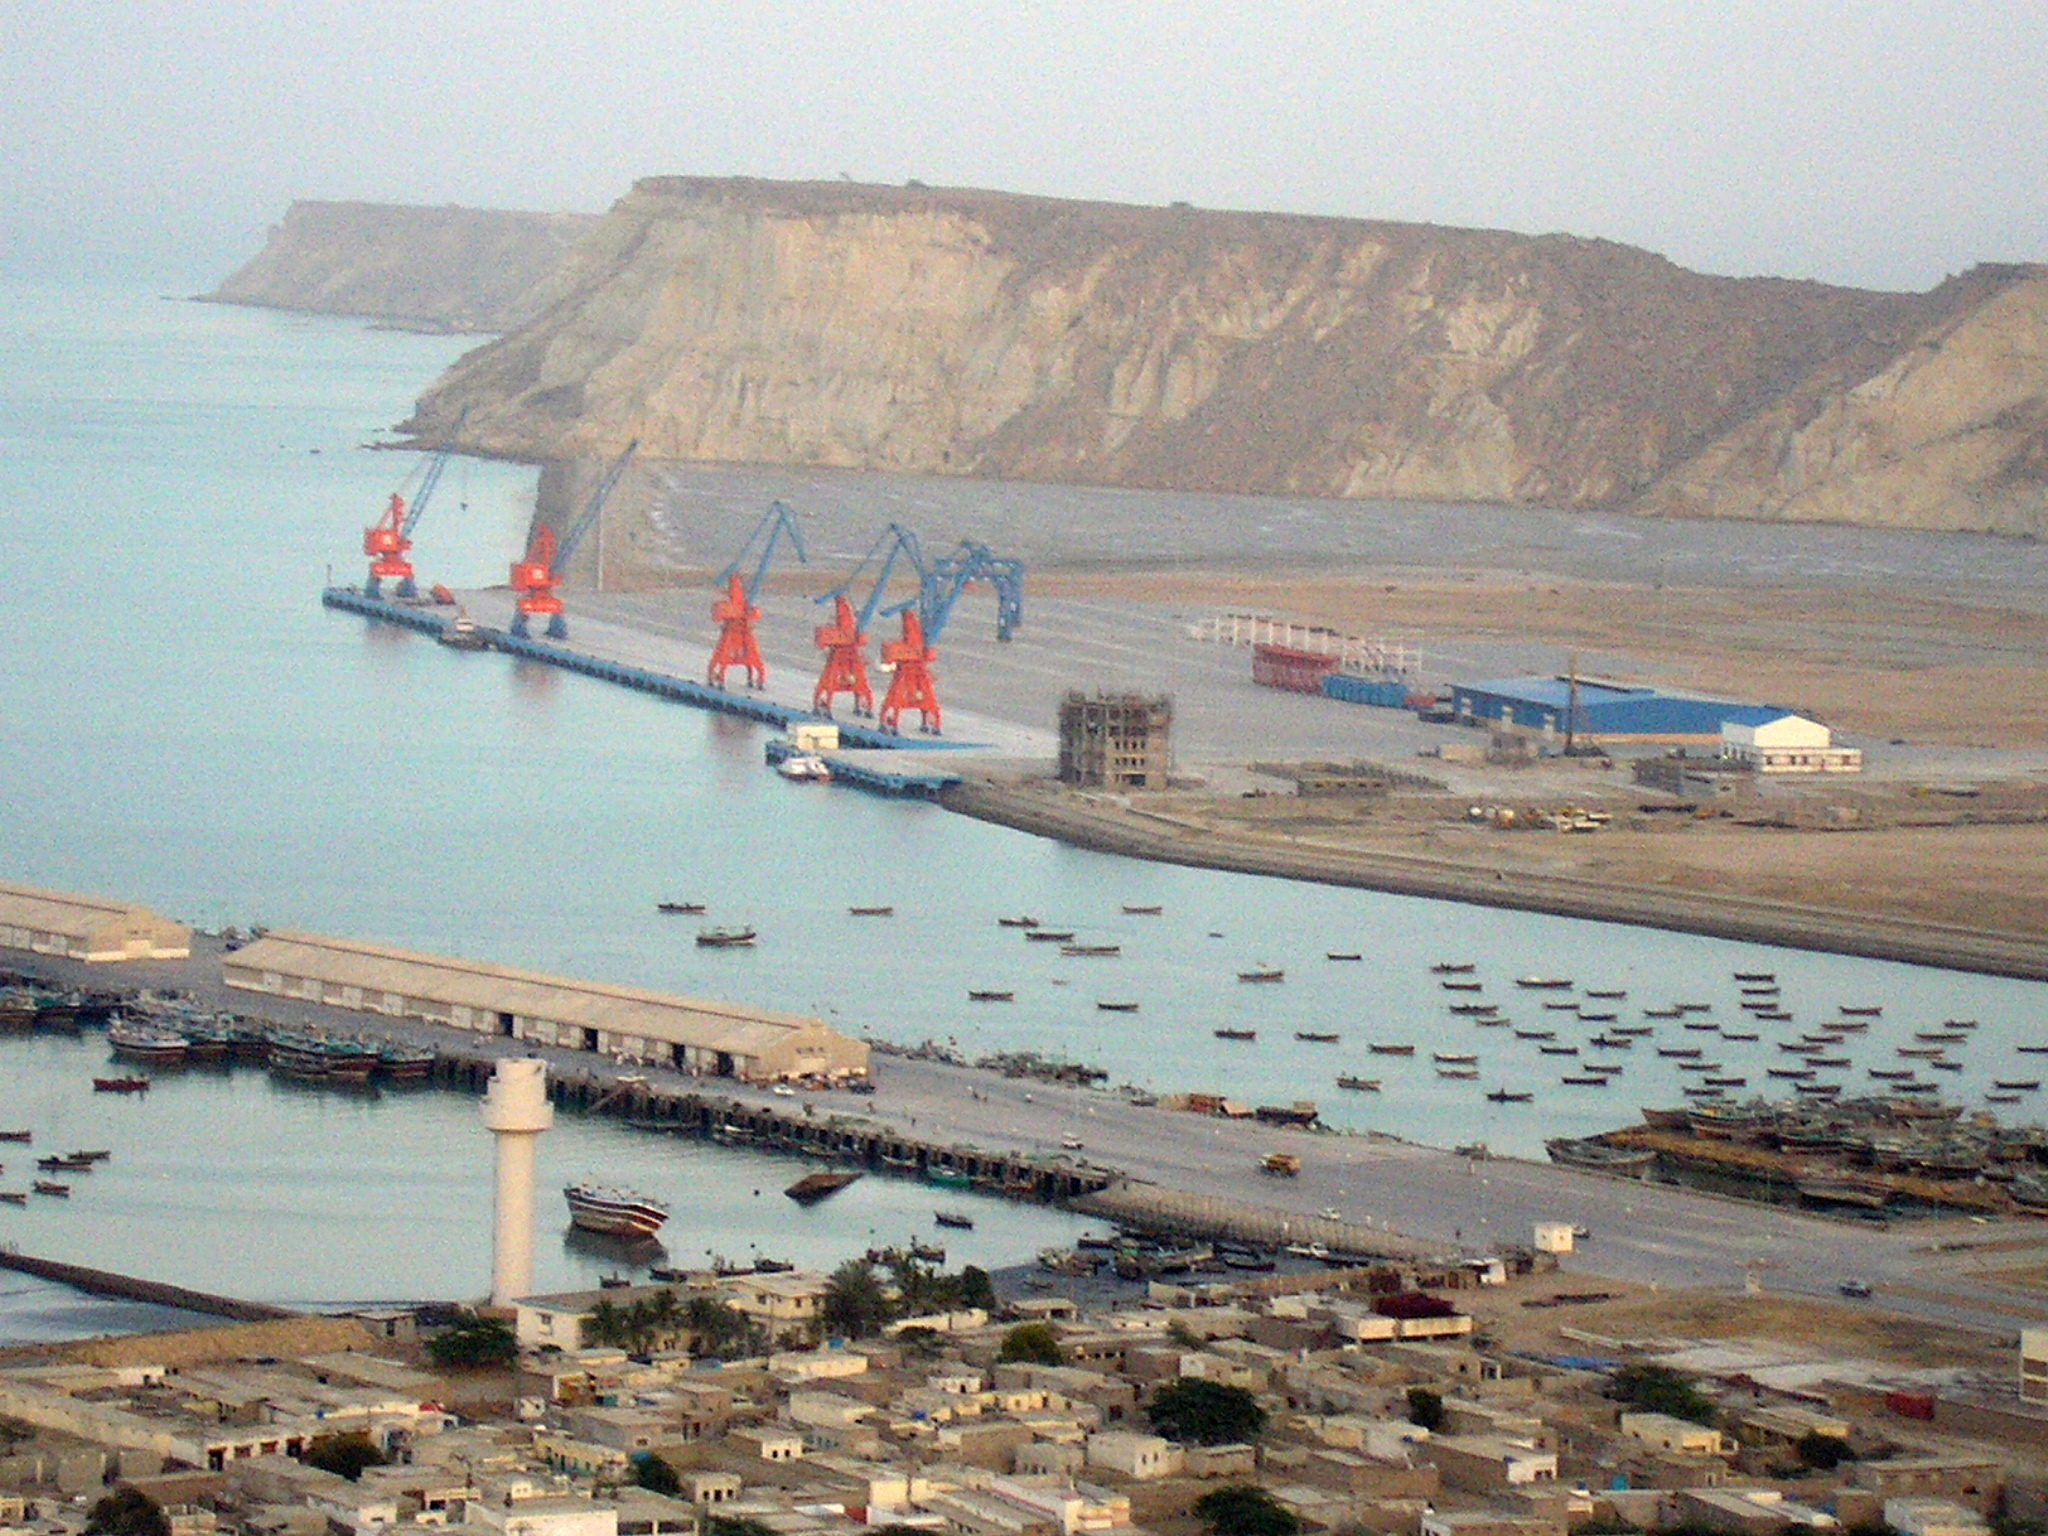 Gwadar Port, situated at Gwadar in Balochistan, Pakistan. Bird's eye view of Gwadar port